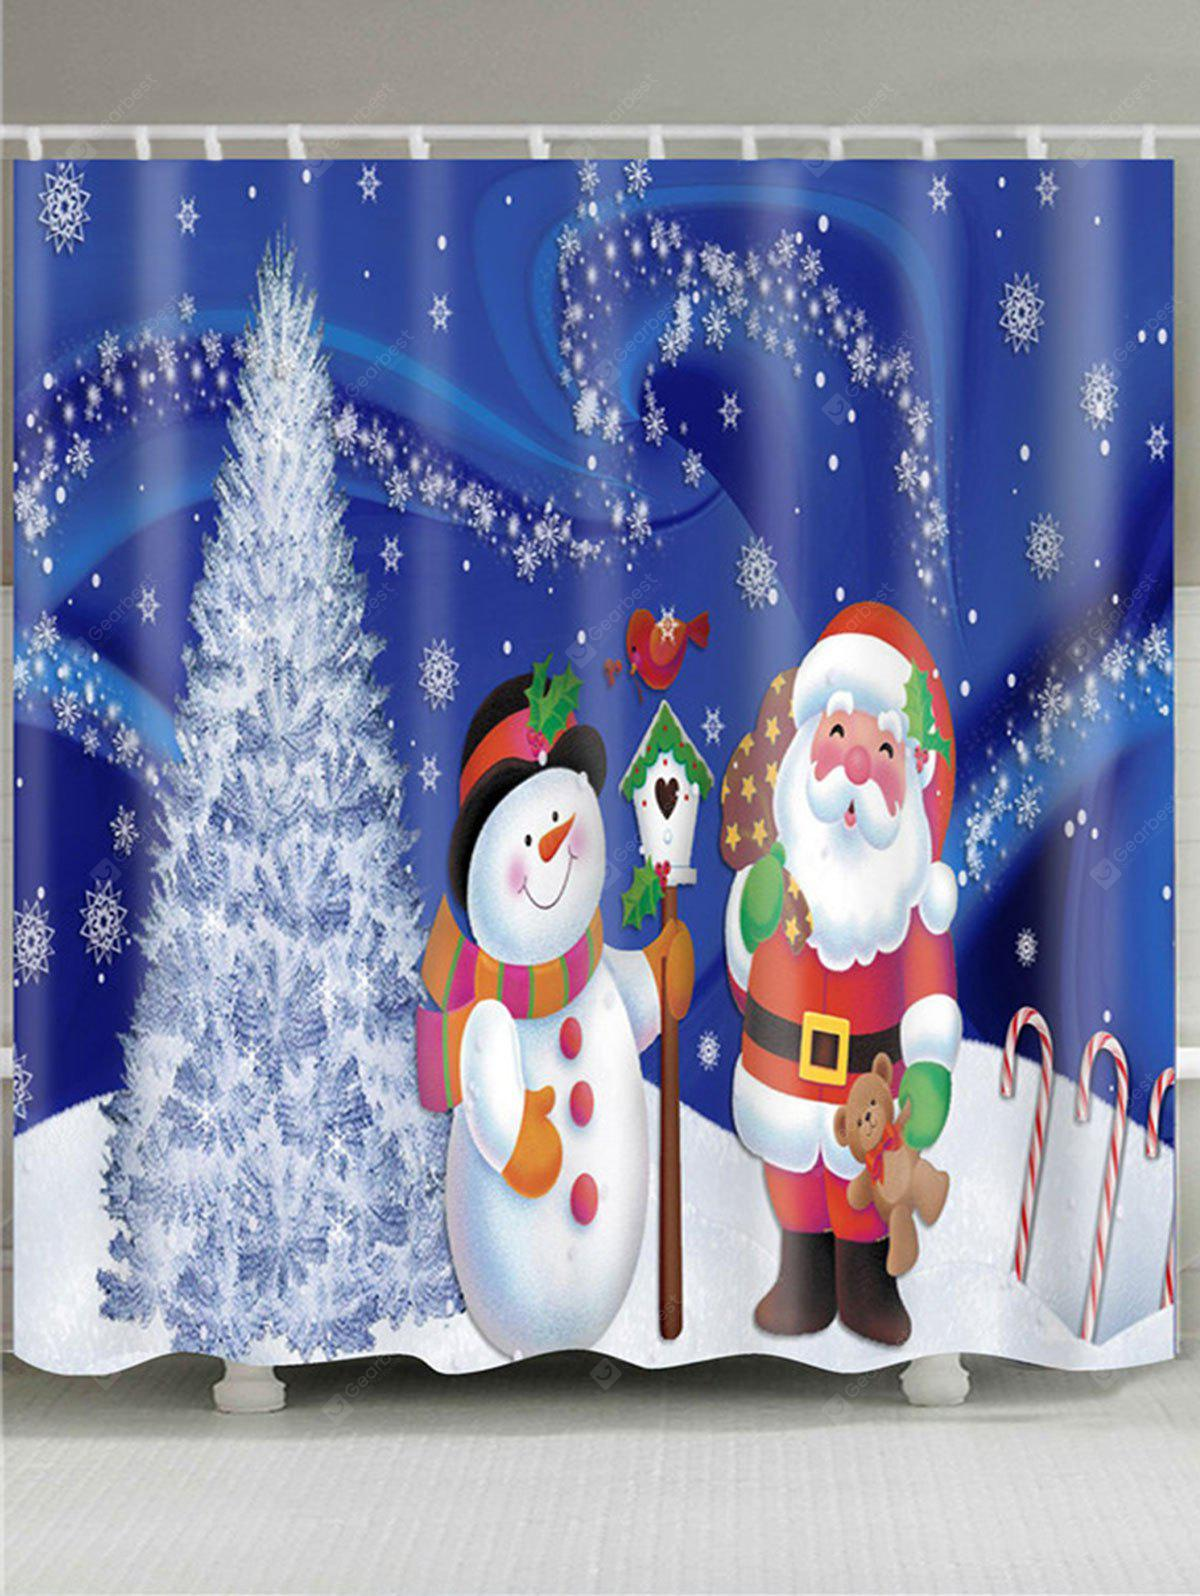 Christmas Tree Snowman Santa Claus Patterned Shower Curtain